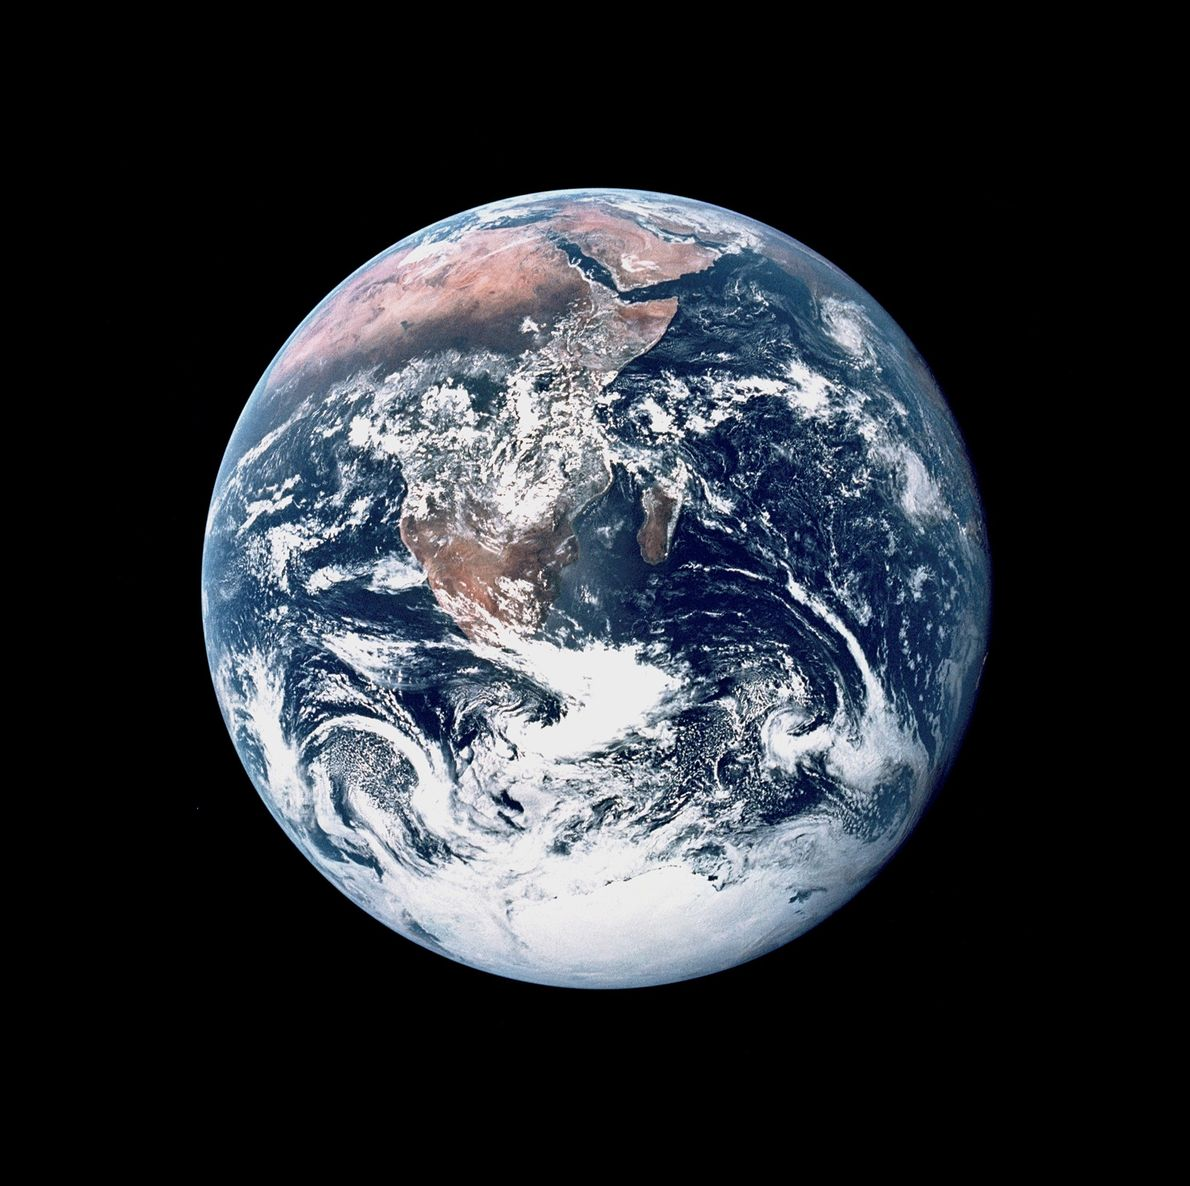 The Apollo 17 crew captured this view of Earth as they travelled toward the moon on ...